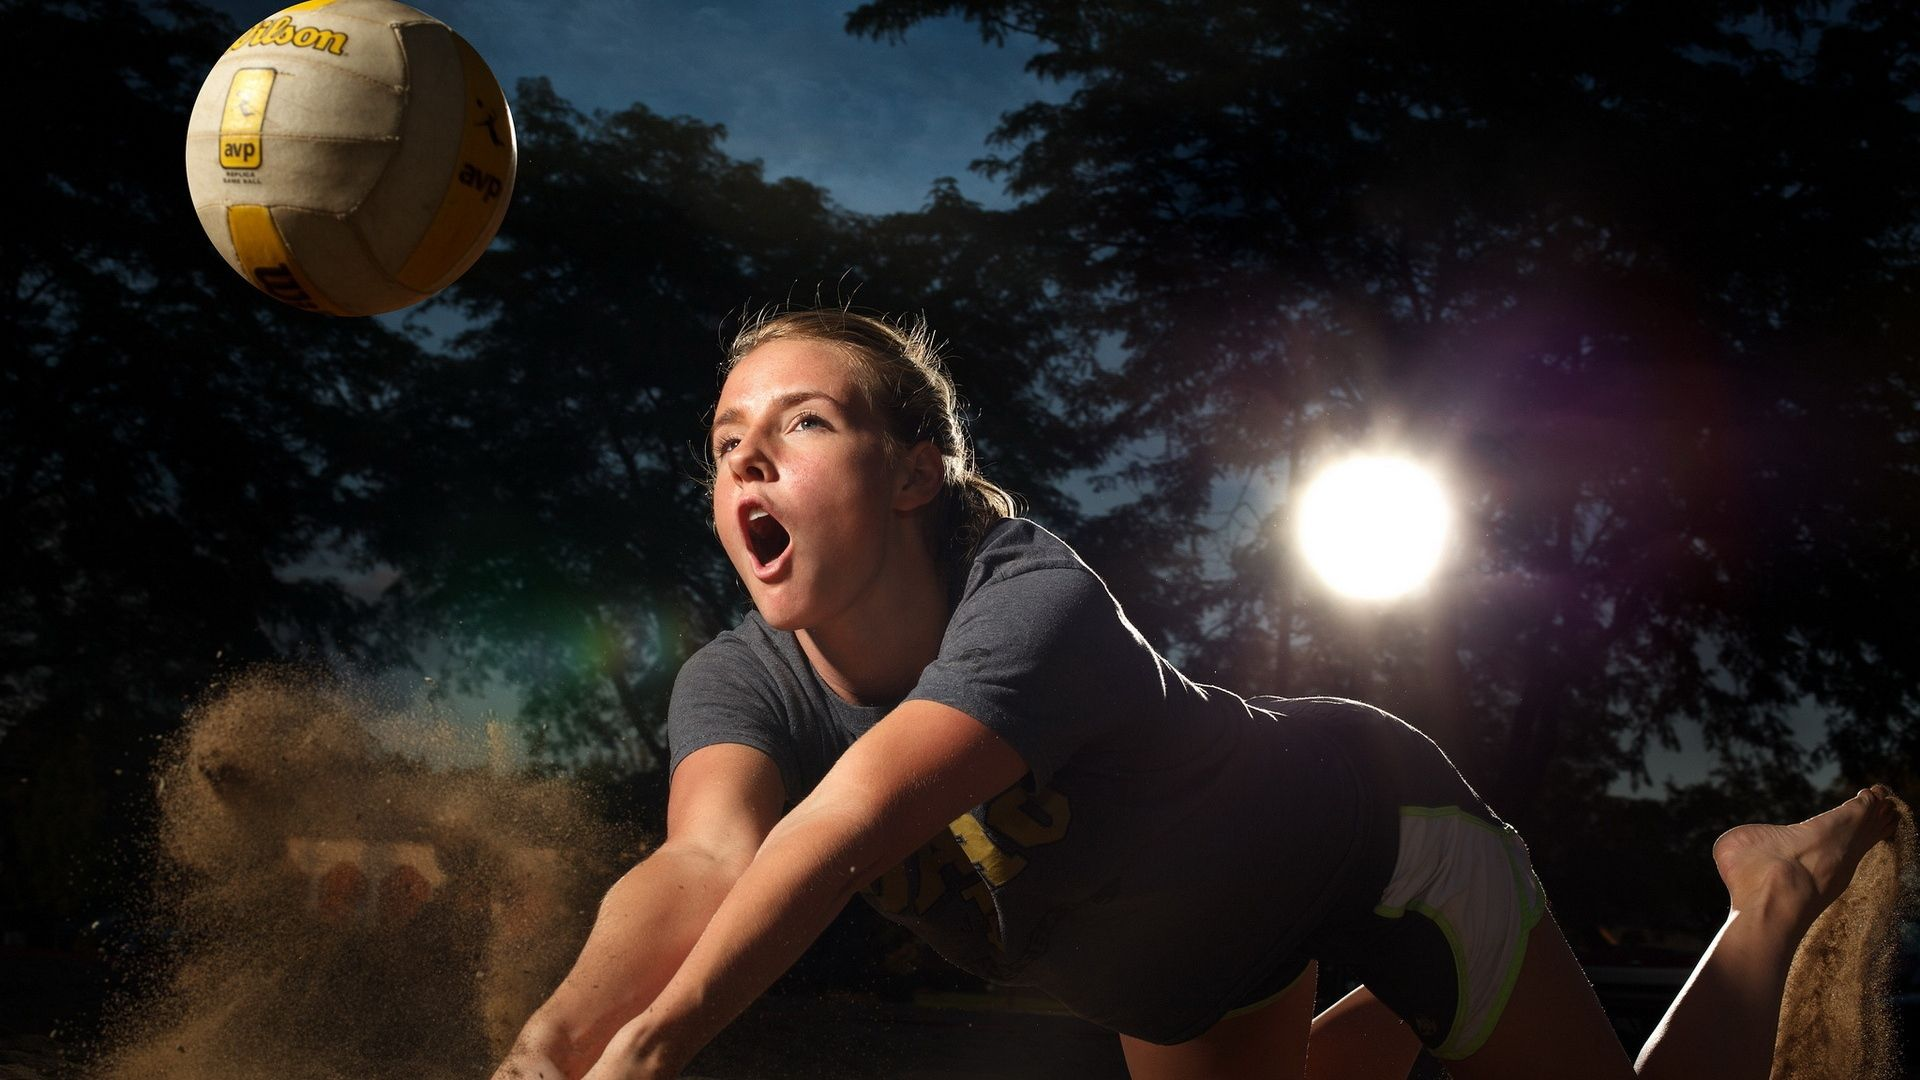 Download Wallpaper 1920x1080 Volleyball Sports Girl Full Hd 1080p Hd Background Sport Girl Sports Volleyball